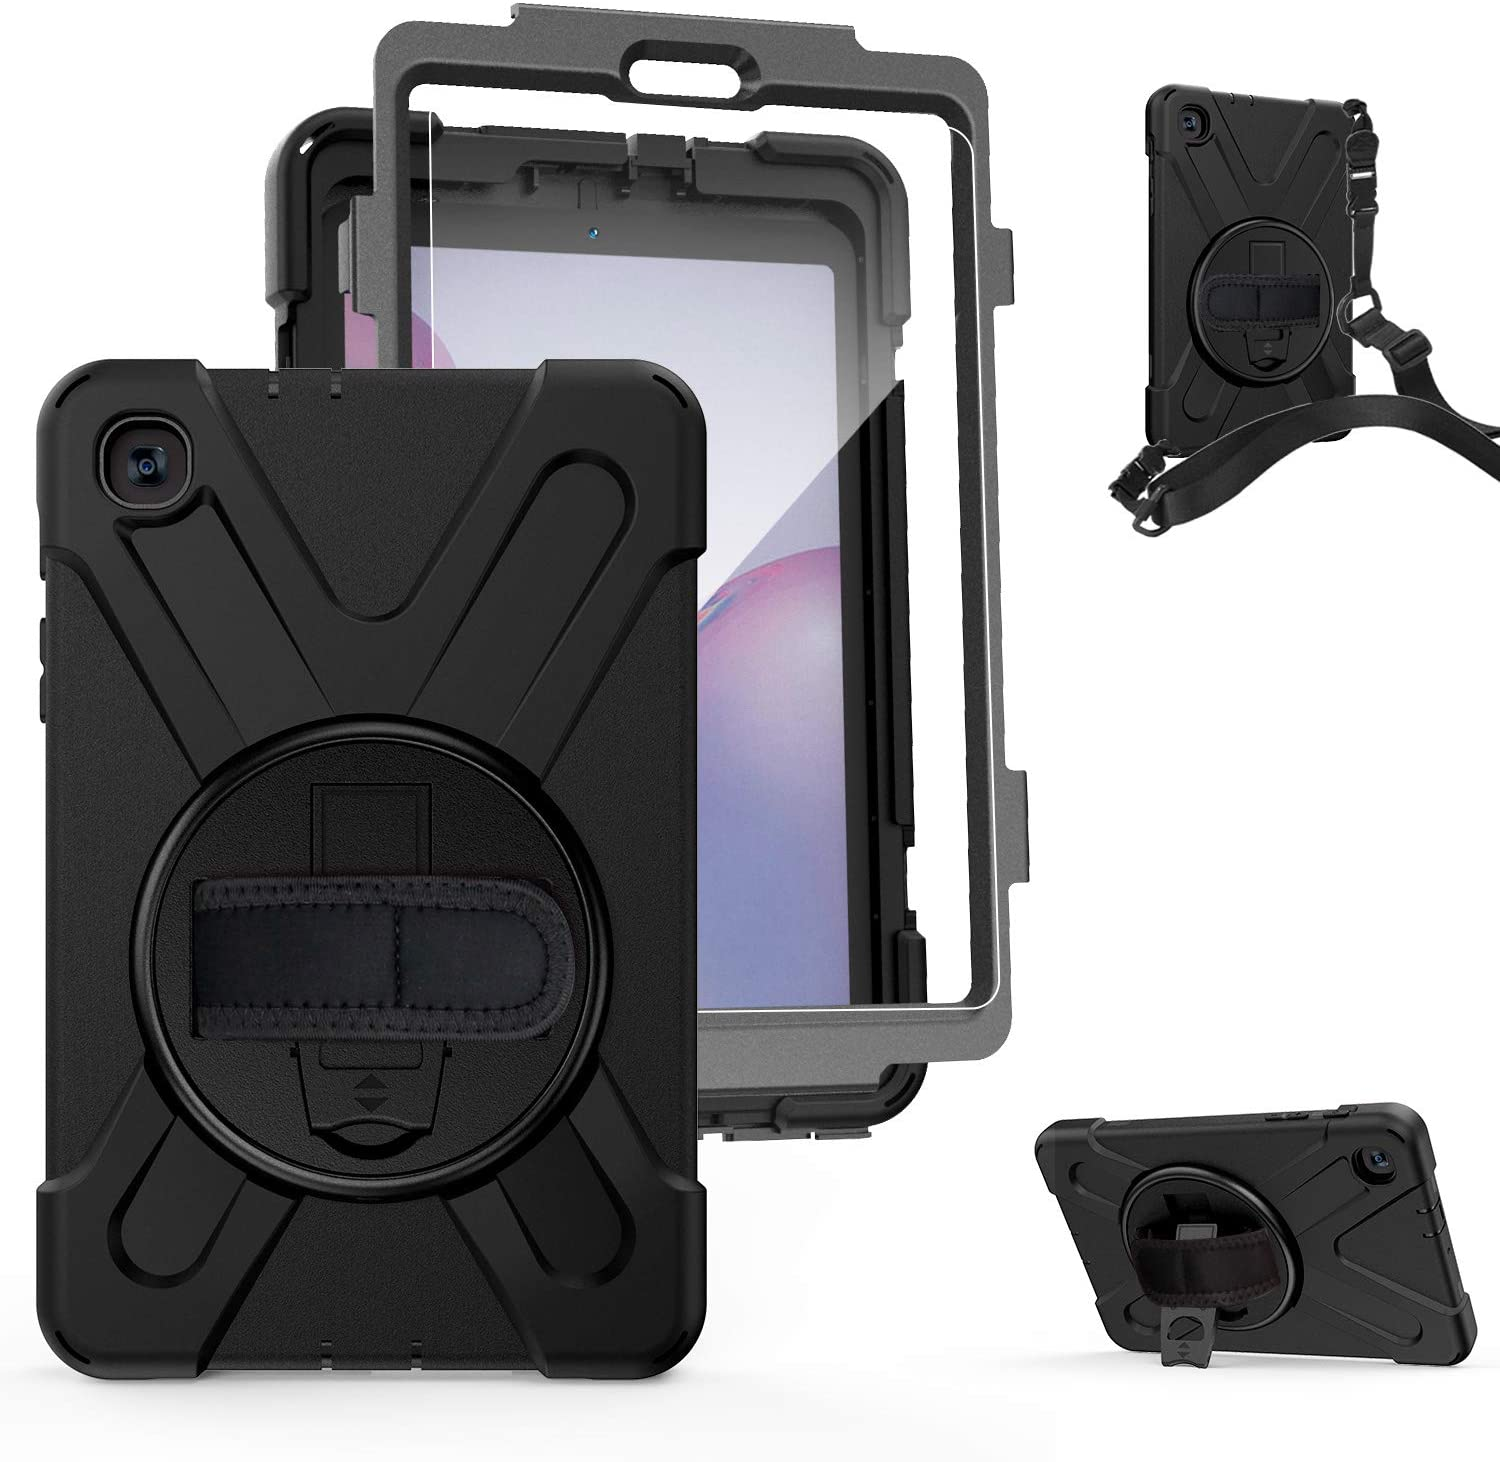 Samsung Galaxy Tab A 8.4 Case 2020 SM-T307 [Built-in Screen Protector] | TSQ Heavy Duty Three Layer Hybrid Protective Case w/ 360° Rotatable Stand Hand Shoulder Strap for Galaxy Tab A 8.4 Inch, Black